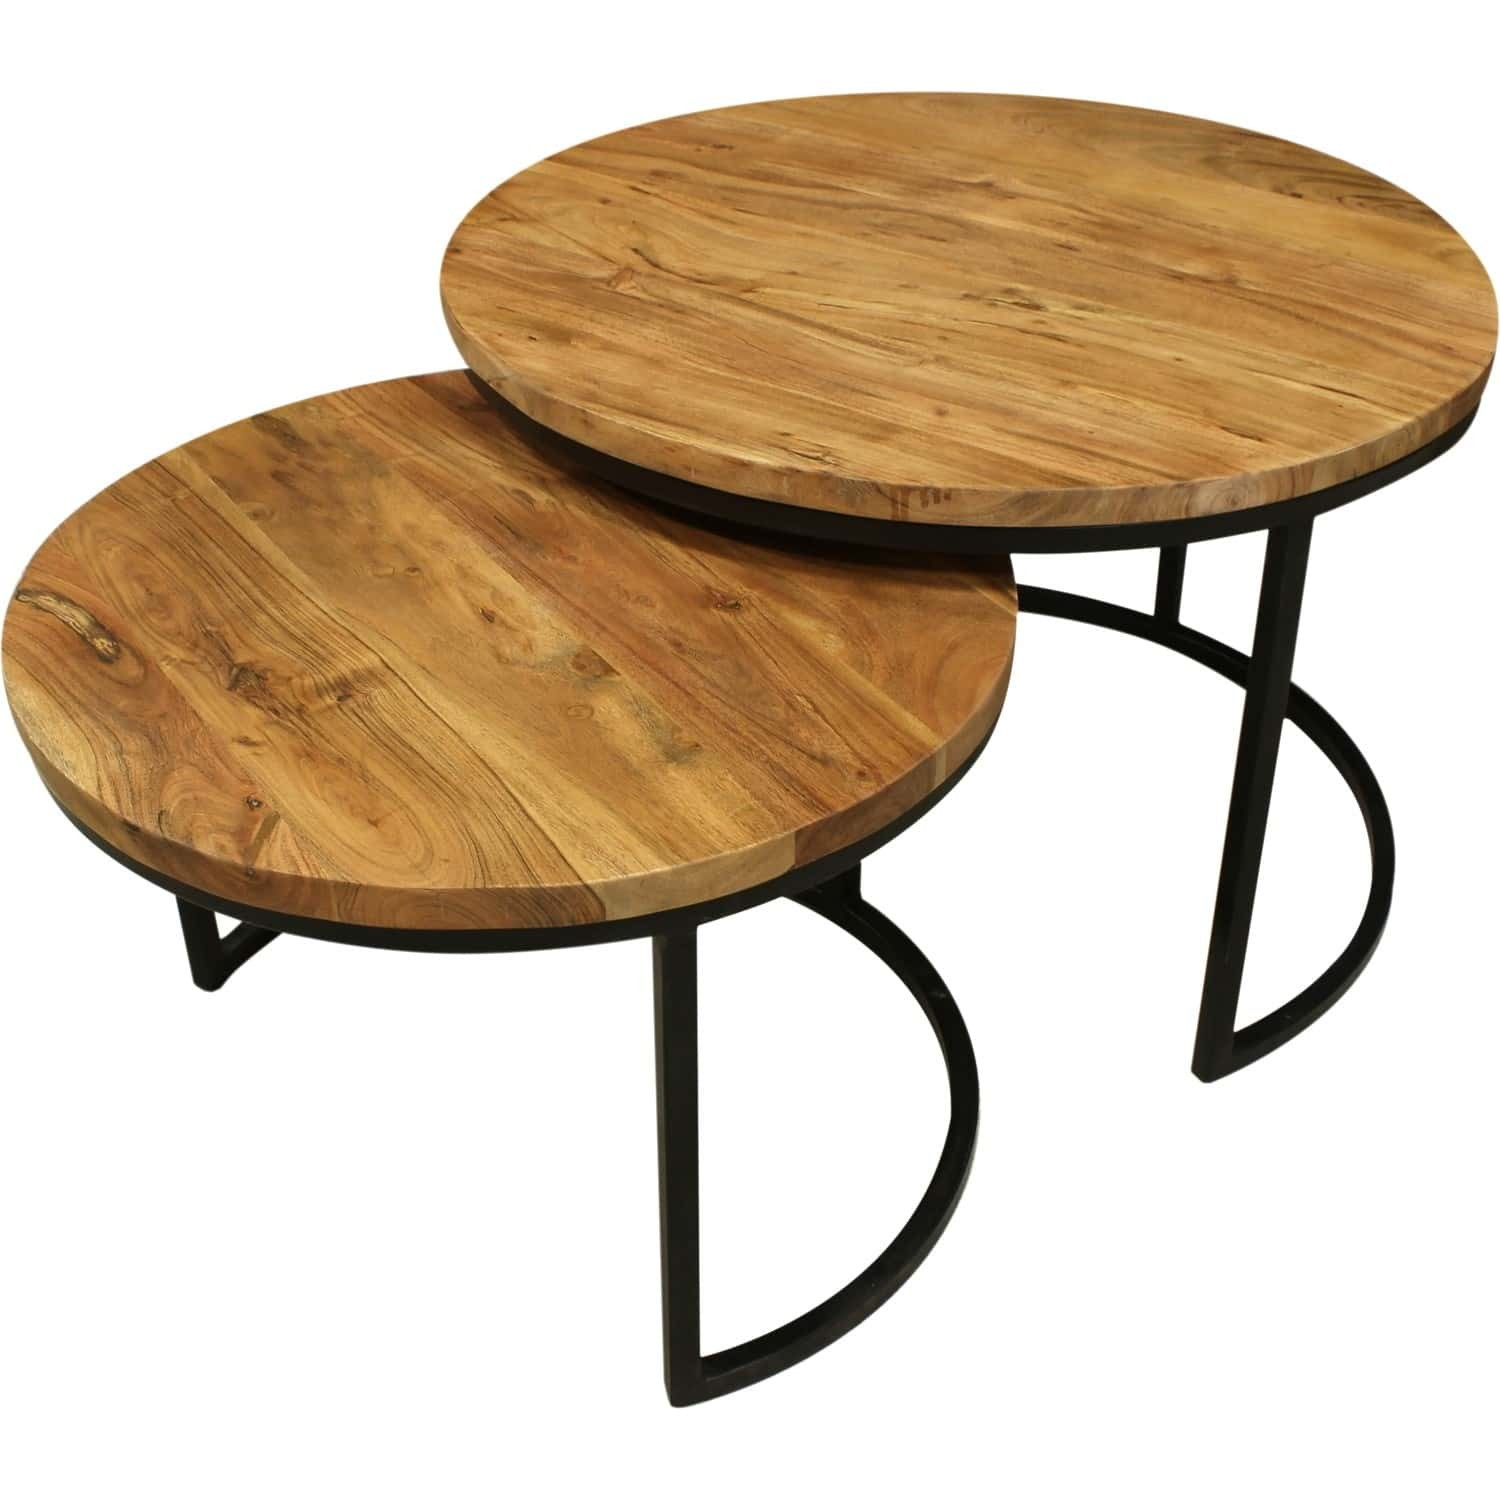 Tables basses gigognes bois et metal for Table ronde bois metal